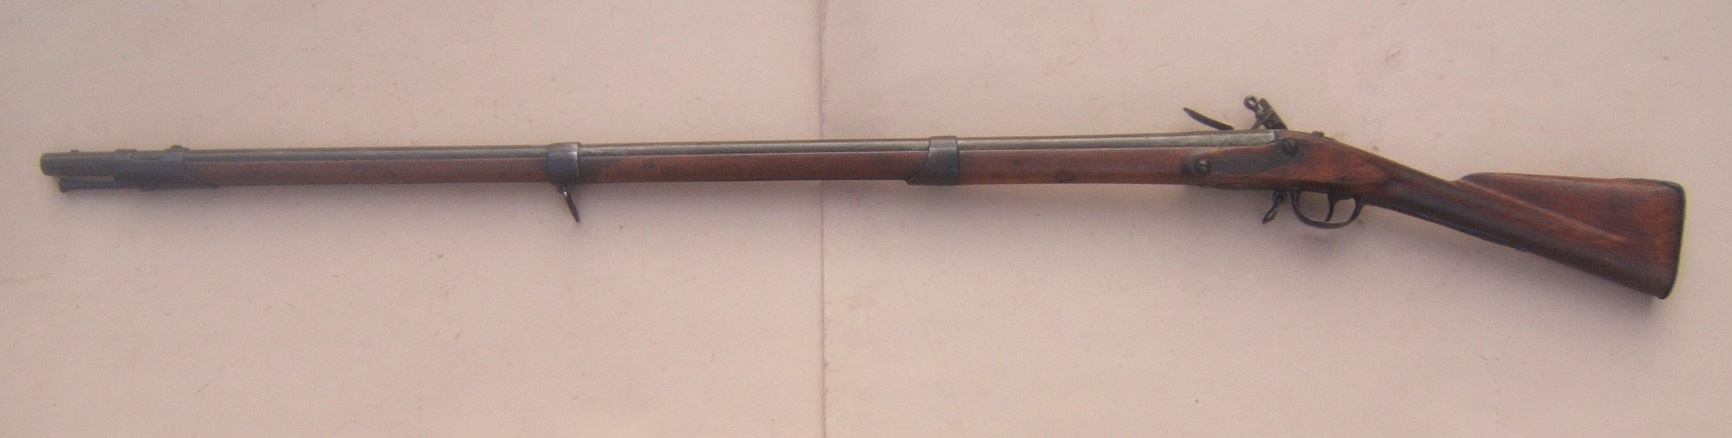 A VERY GOOD WAR of 1812 PERIOD US MODEL 1795/8 CONTRACT MUSKET, ca. 1798 view 2